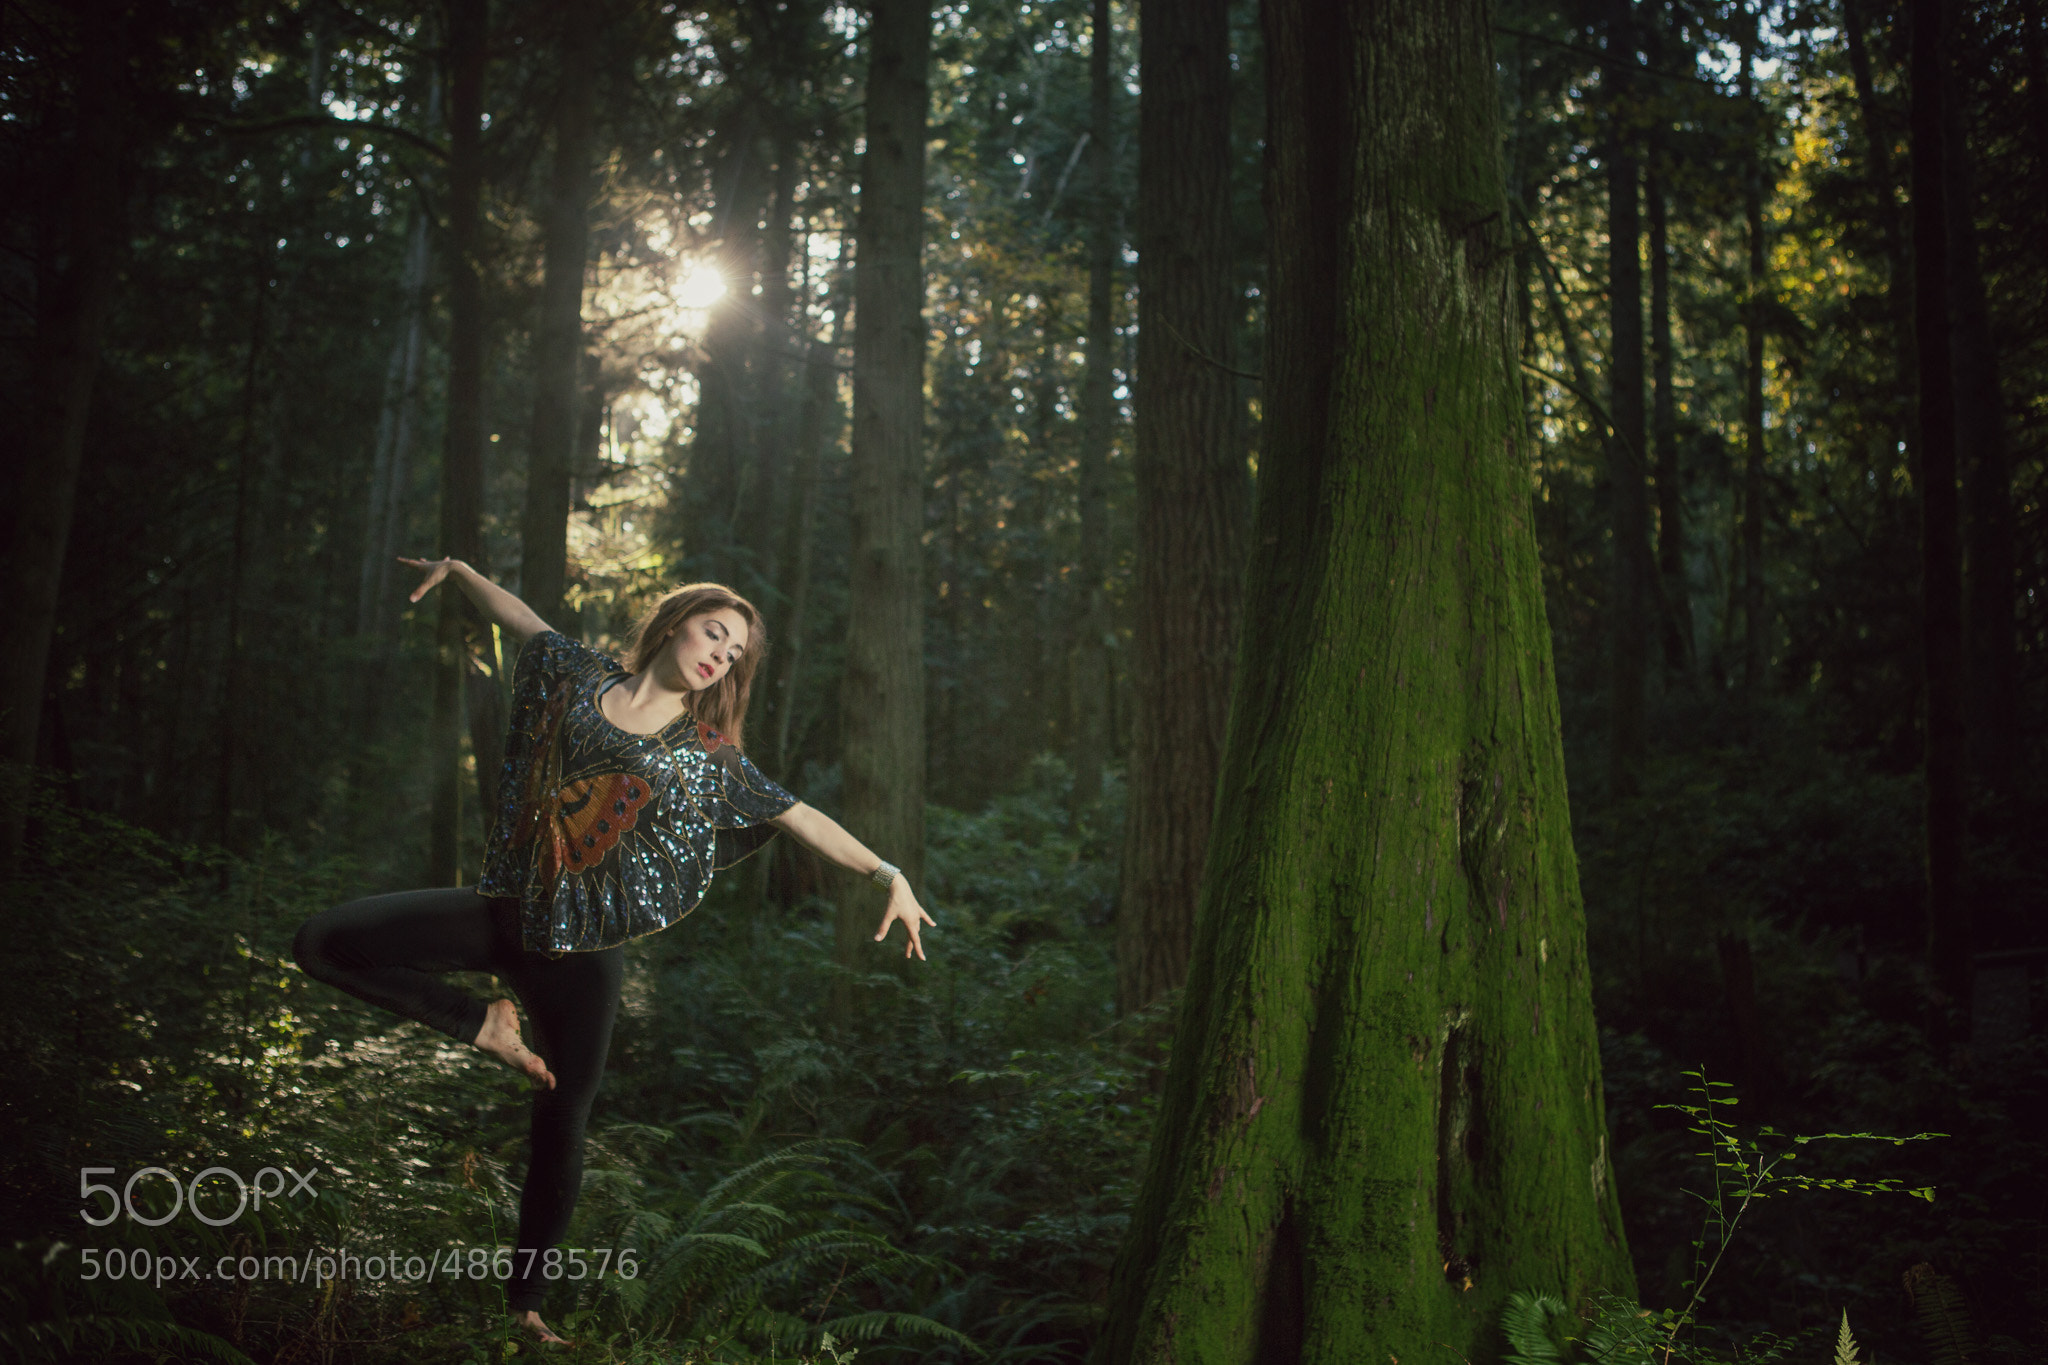 Photograph Ava in the Forest by Garrett Gibbons on 500px